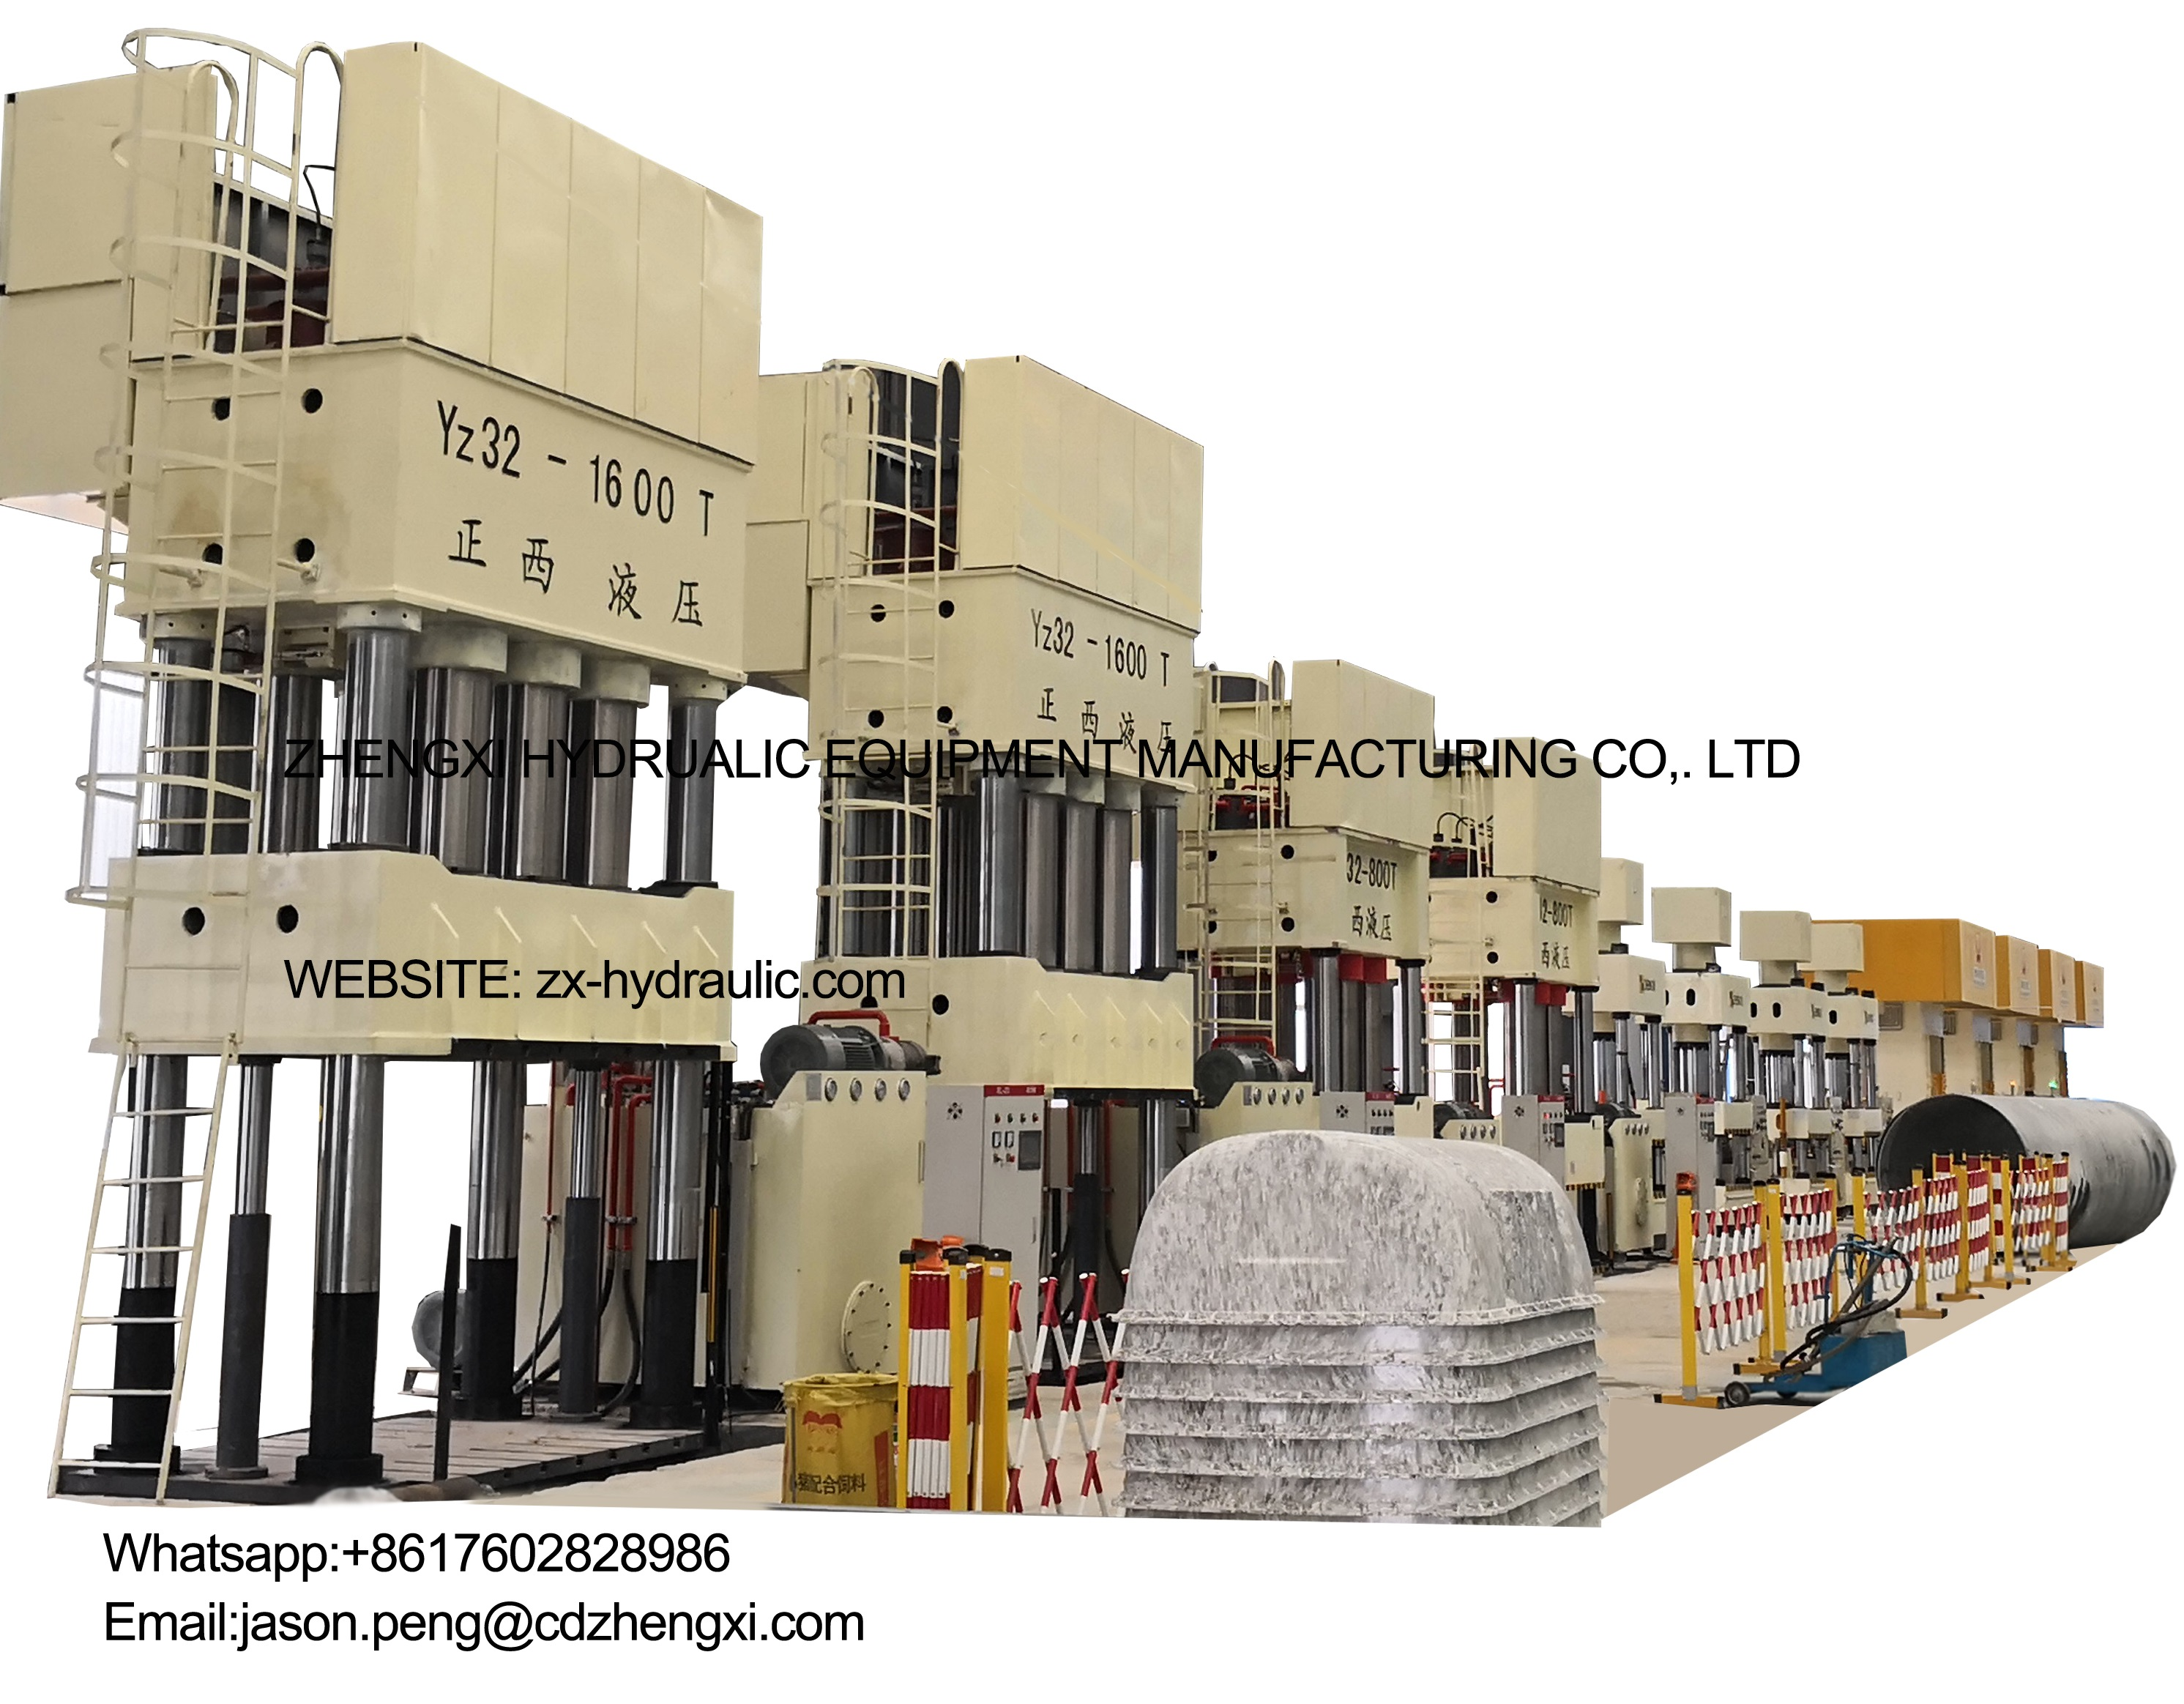 hydraulic-press-machine-production-line